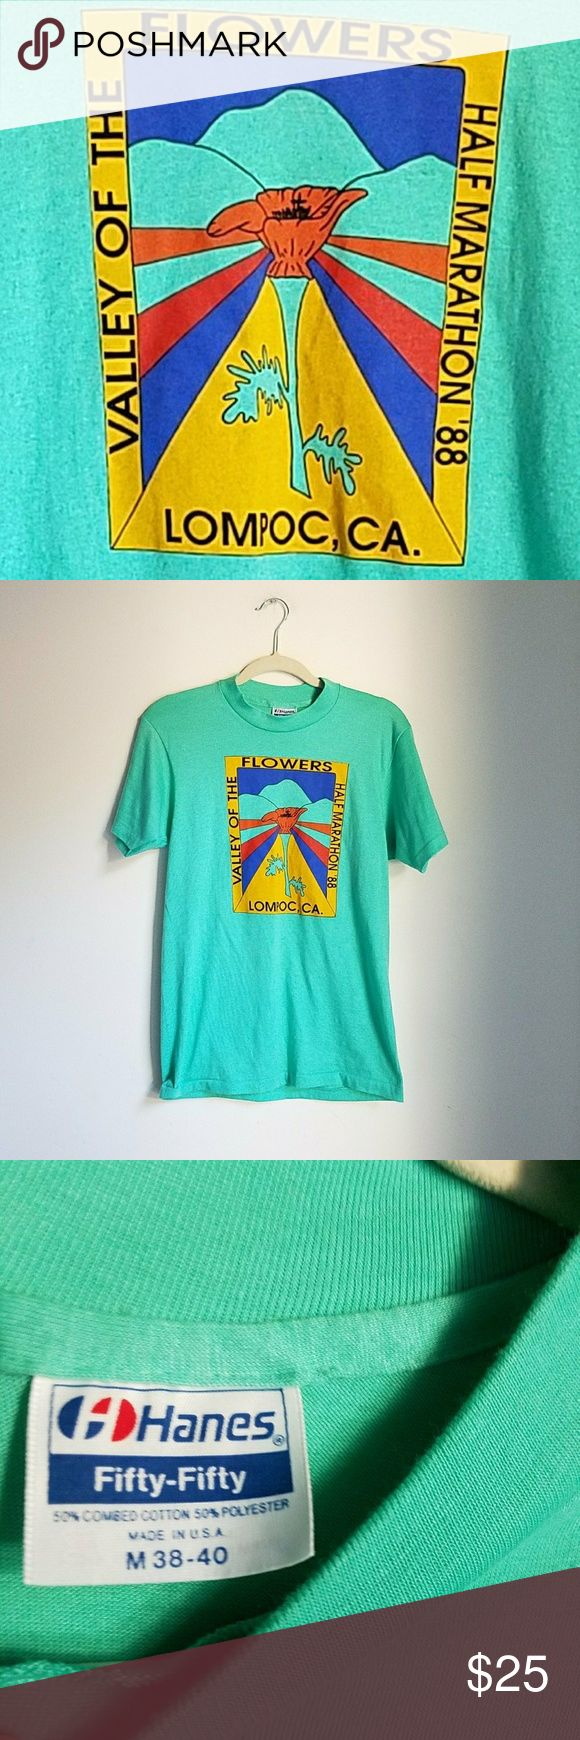 Vtg '88 Valley of the Flowers retro tee Vintage 80's Valley of the Flowers Lompoc California emerald green tee. Size M.   Super soft and easy to wear. Such retro vibes and perfect comfy fit.   It looks like new condition.    ● 20% off bundles.   Vintage 80s eighties tshirt marathon  lompoc califonia flower child retro colorful hippie indie urban street wear free alternative apparel notsopopularhobbit Vintage Tops